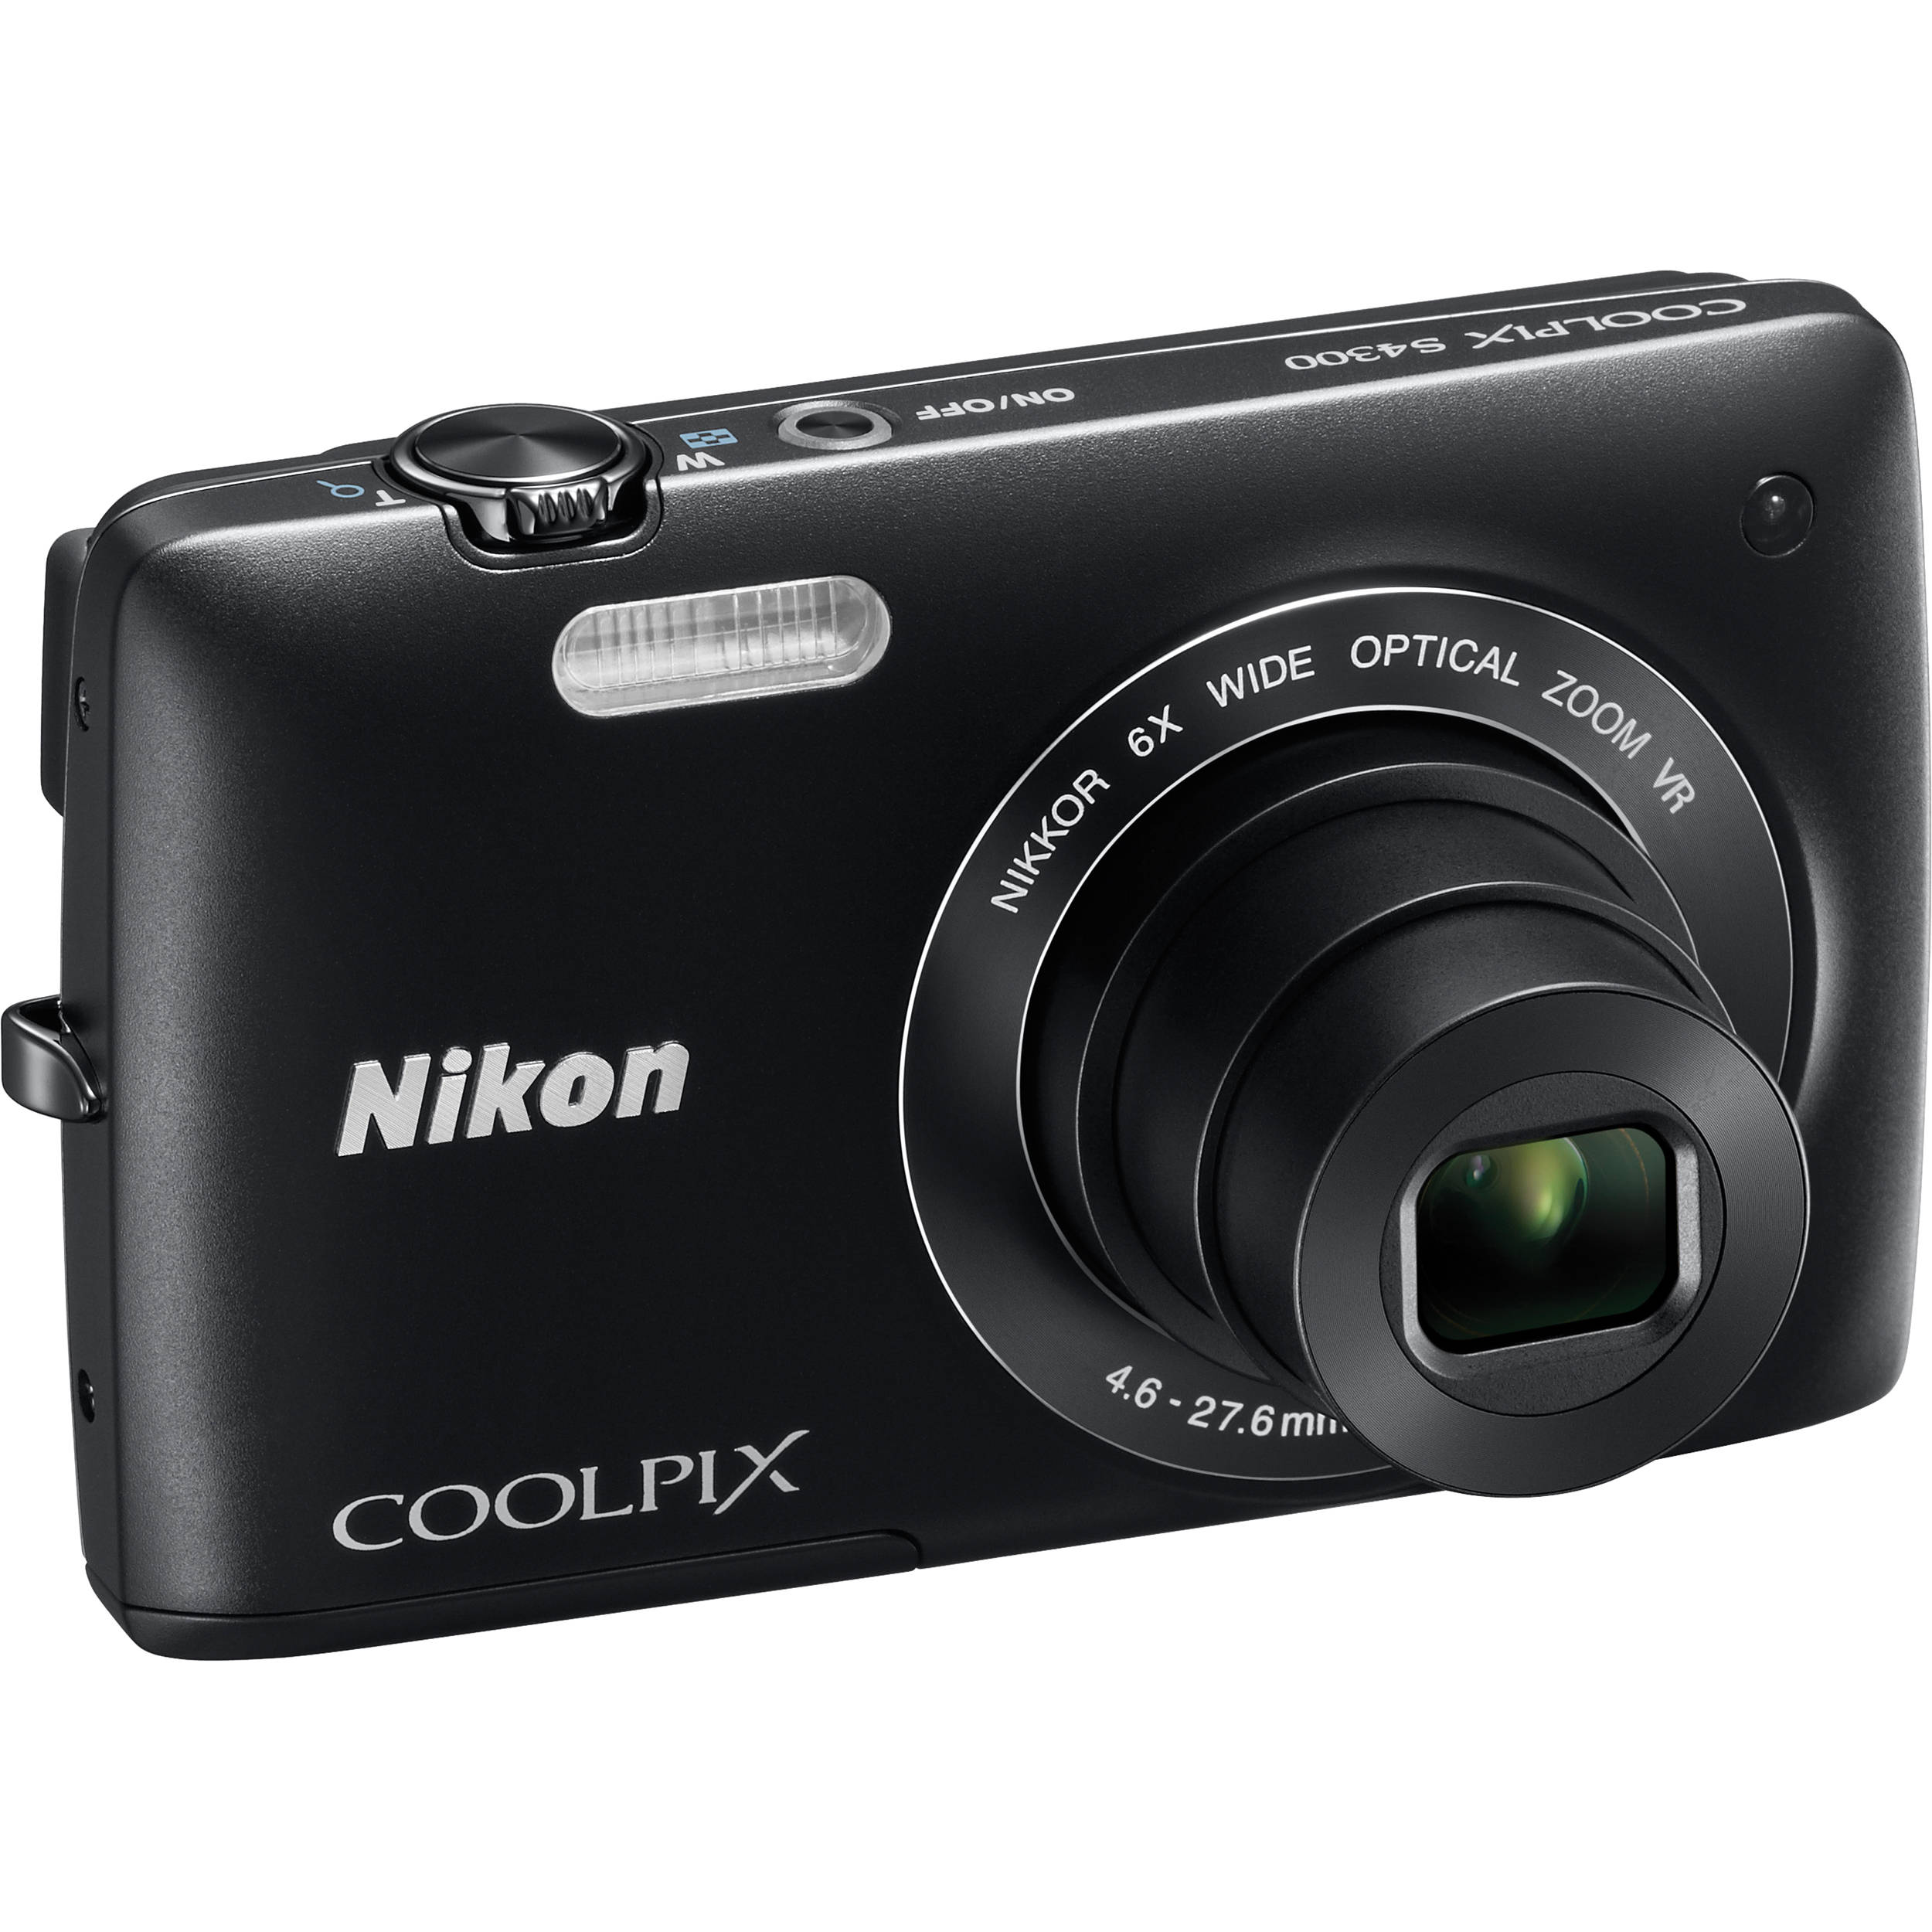 Nikon Coolpix 4300 Windows 7